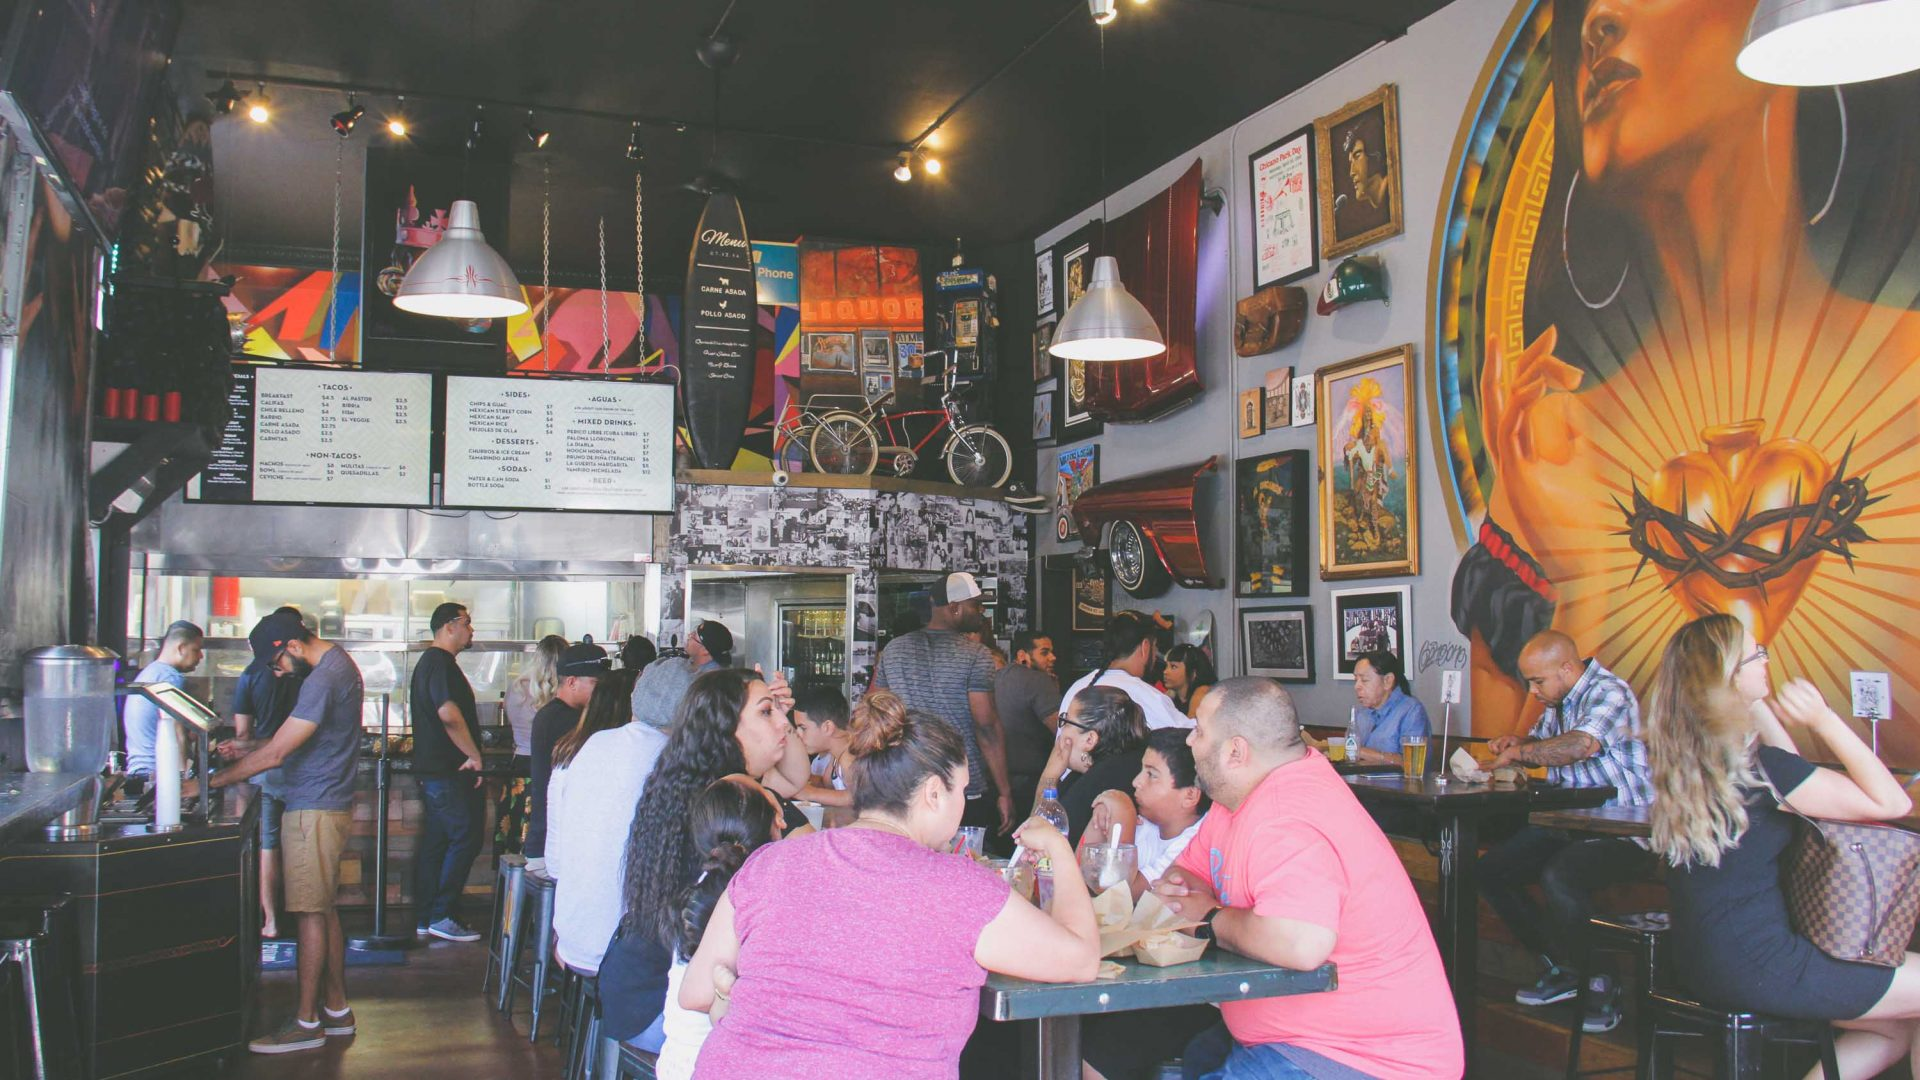 Salud in Barrio Logan is a hip, casual Mexican restaurant-salsa bar serving up tacos and craft beer.